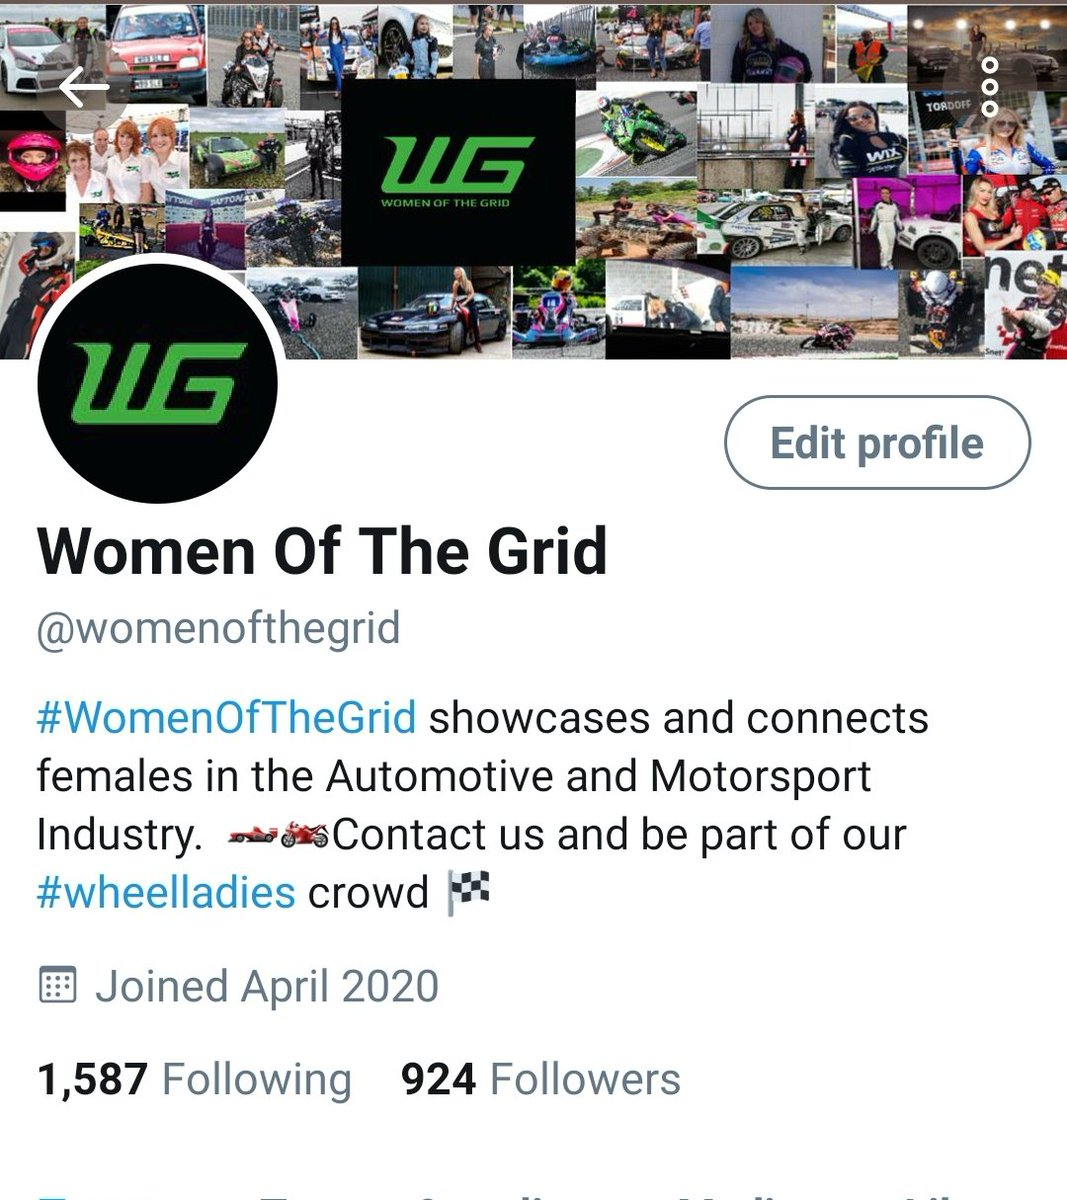 We are soooooo close to hitting 1k followers!!!  🙏🏍🏎🚦🙏 https://t.co/i9BSkUmORJ